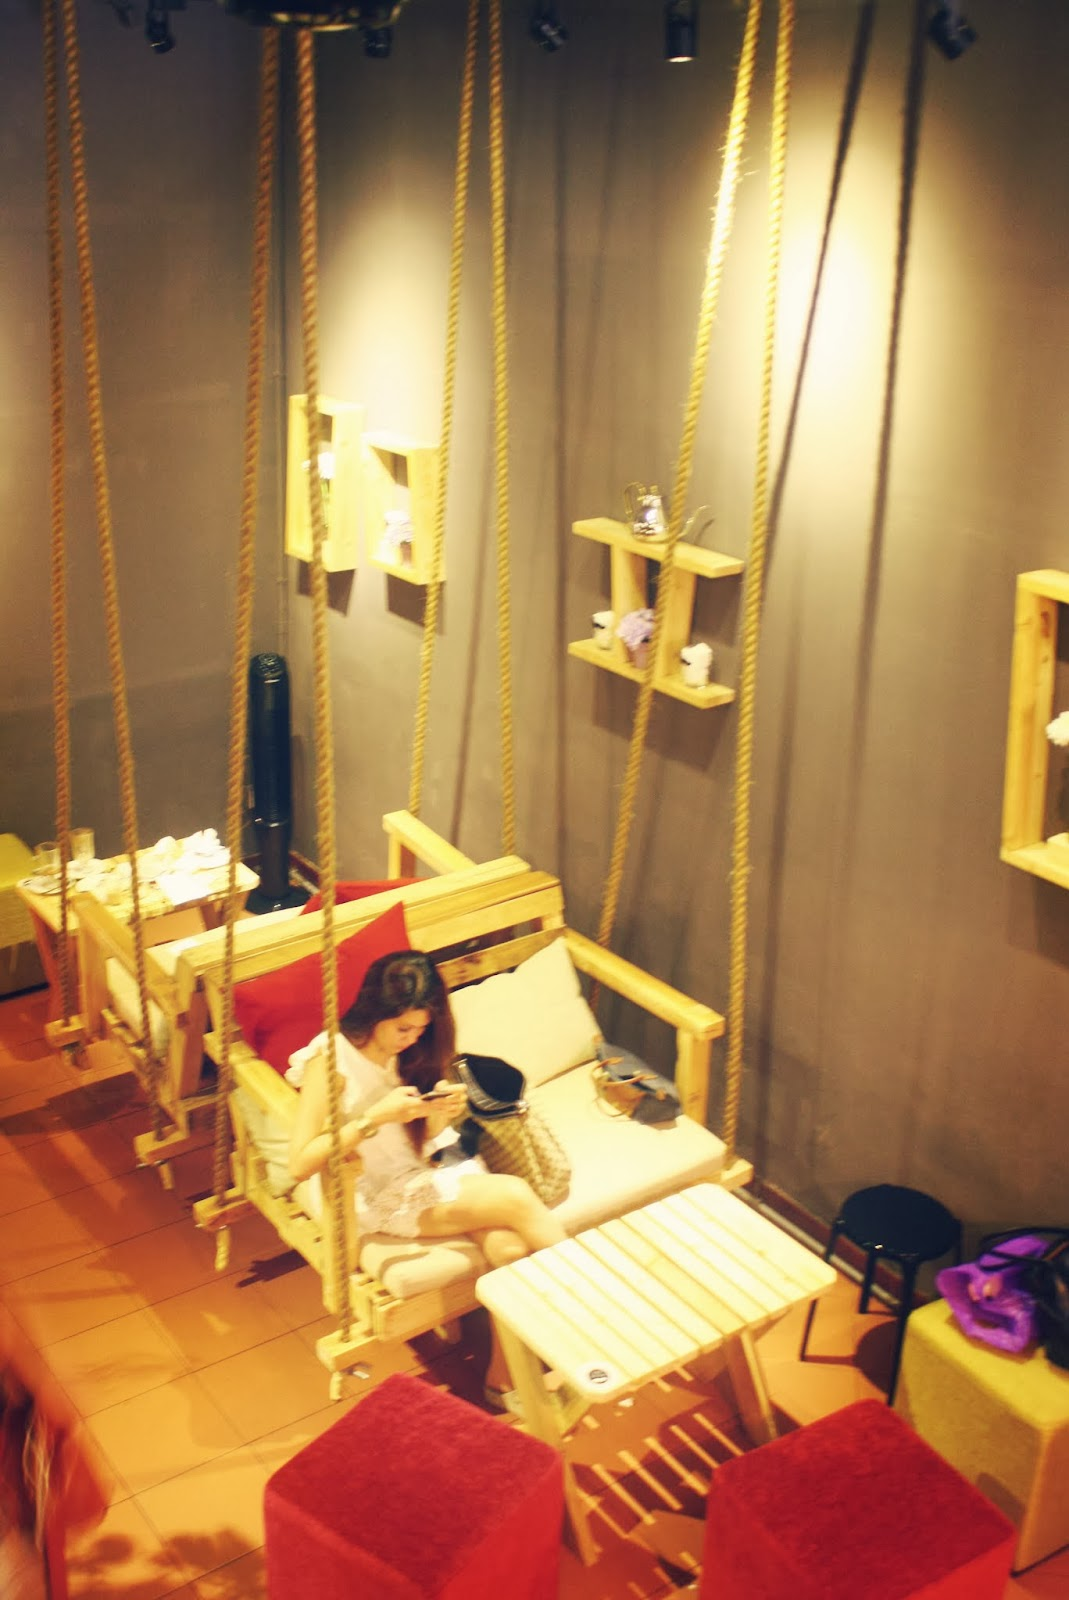 Swing Chair Penang Think Steelcase Moustache Houze Cafe Natalie Wen